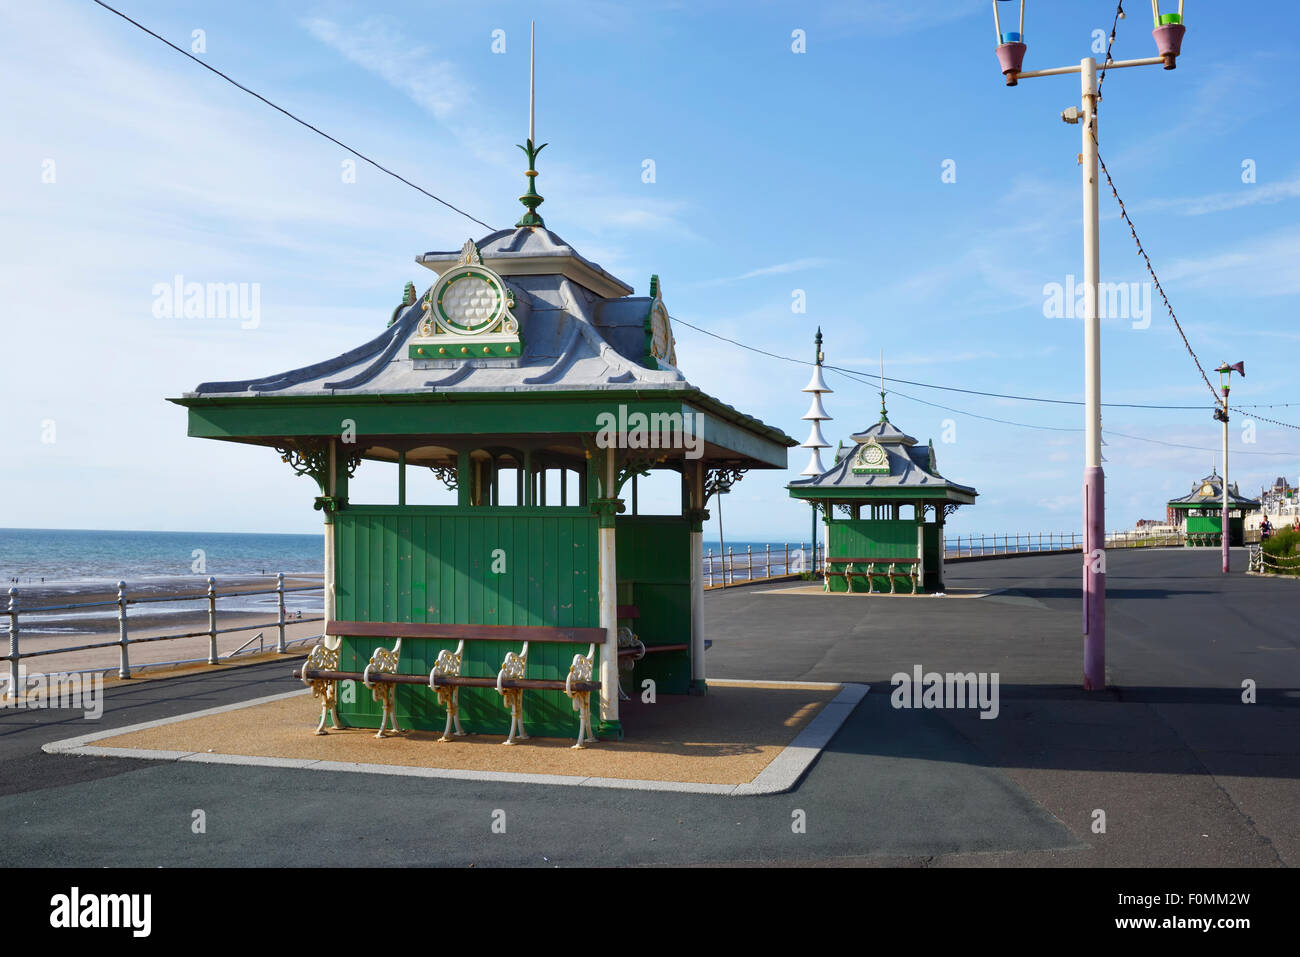 Victorian shelters on the promenade in Blackpool, Lancashire - Stock Image